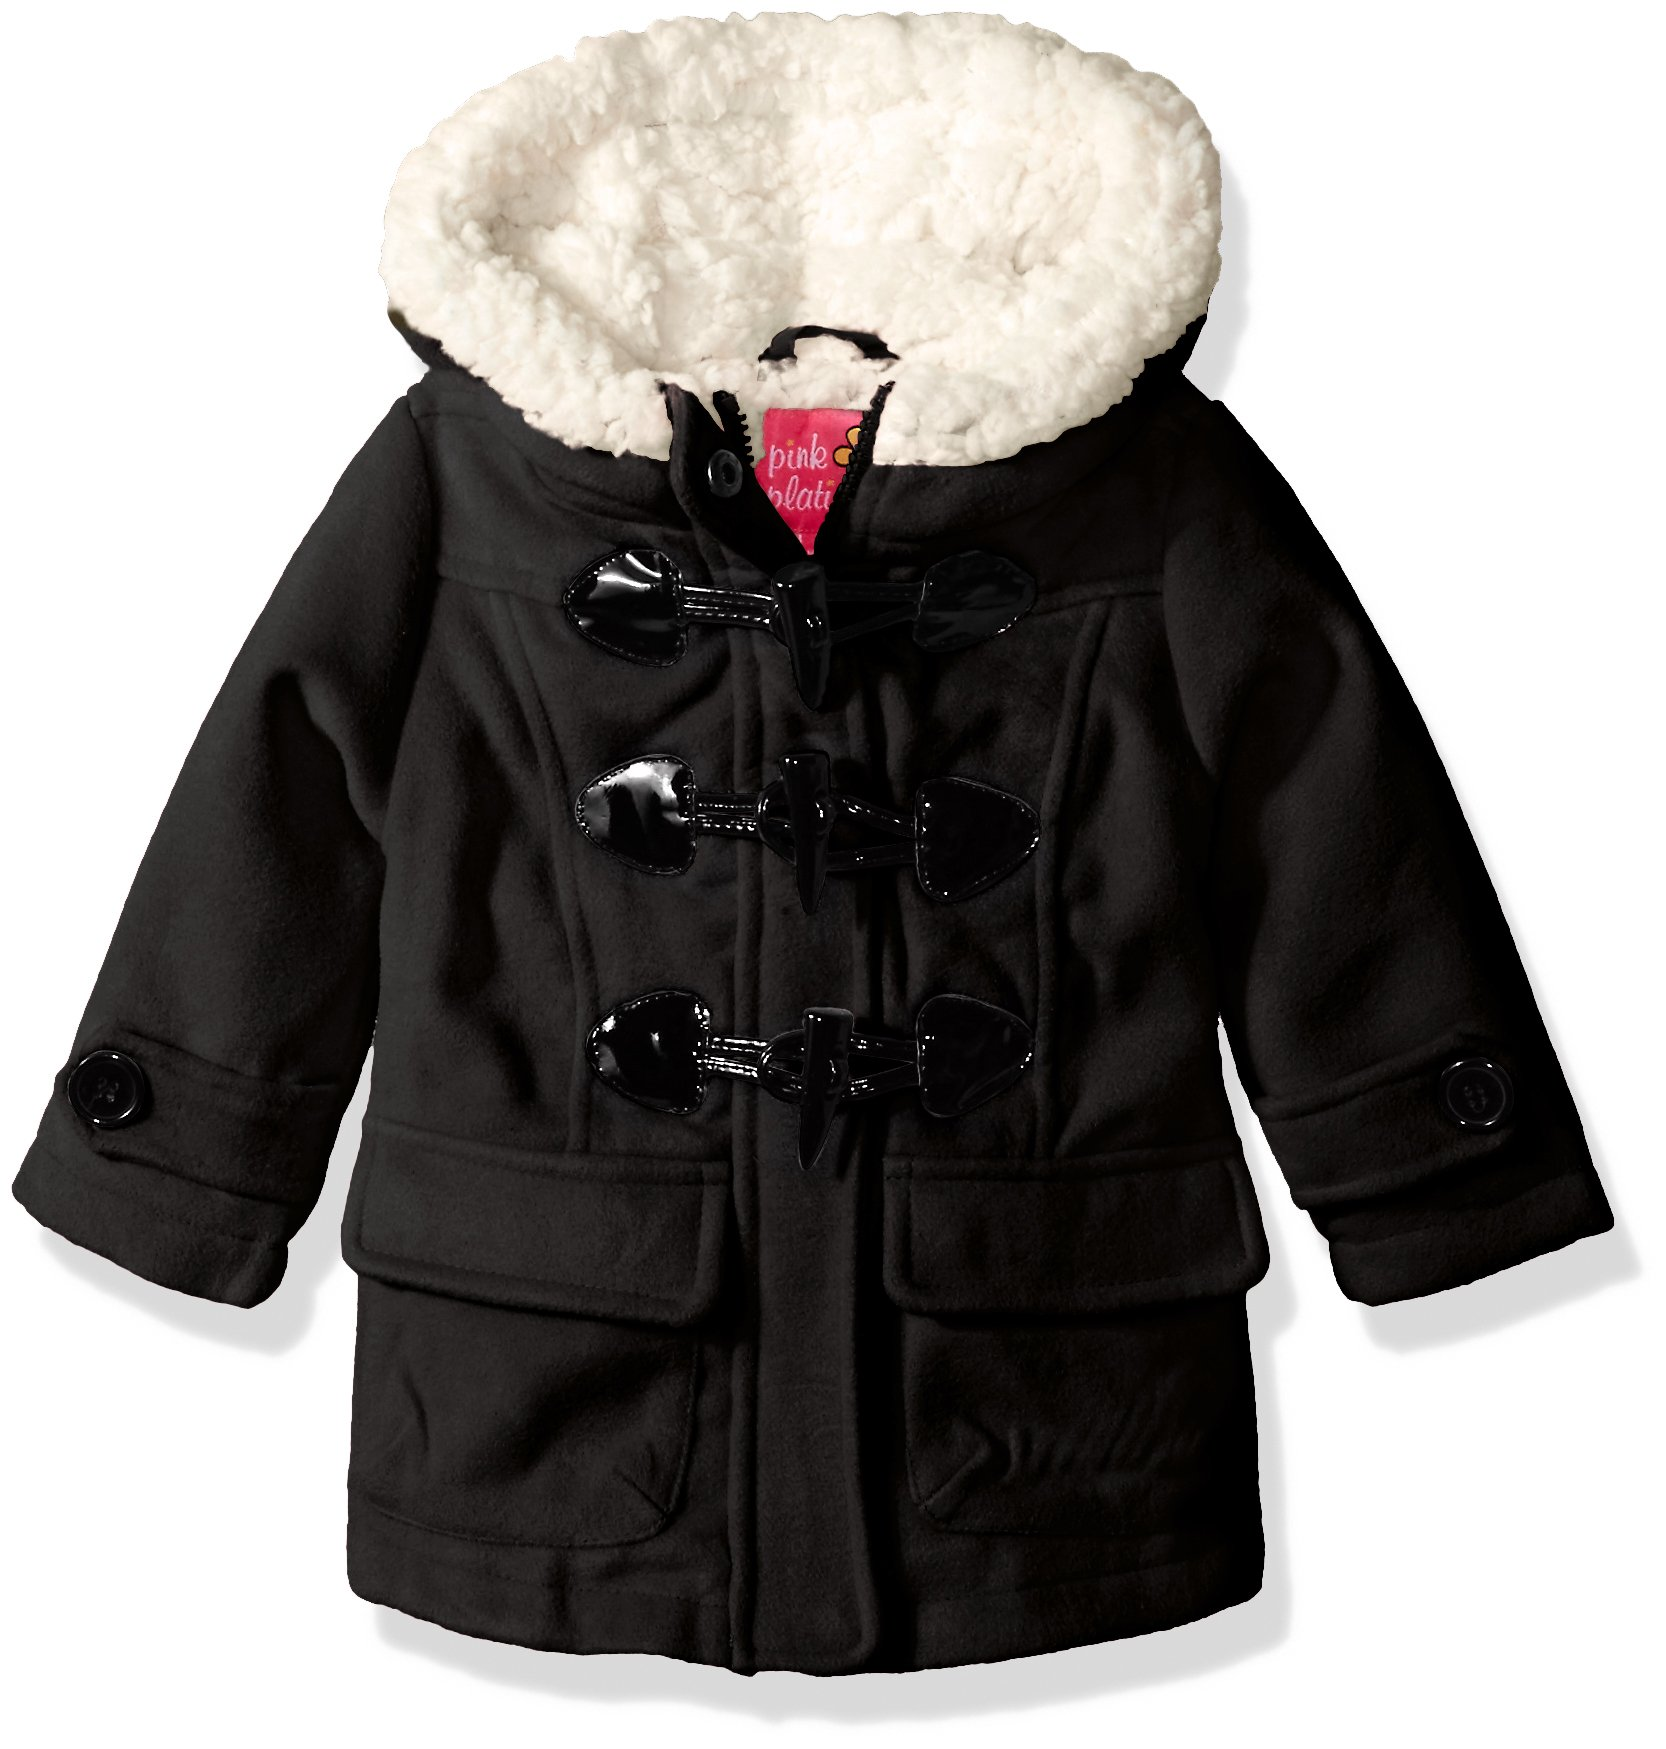 Pink Platinum Baby Girls Wool Toggle and Zip Front Coat, Black, 18M